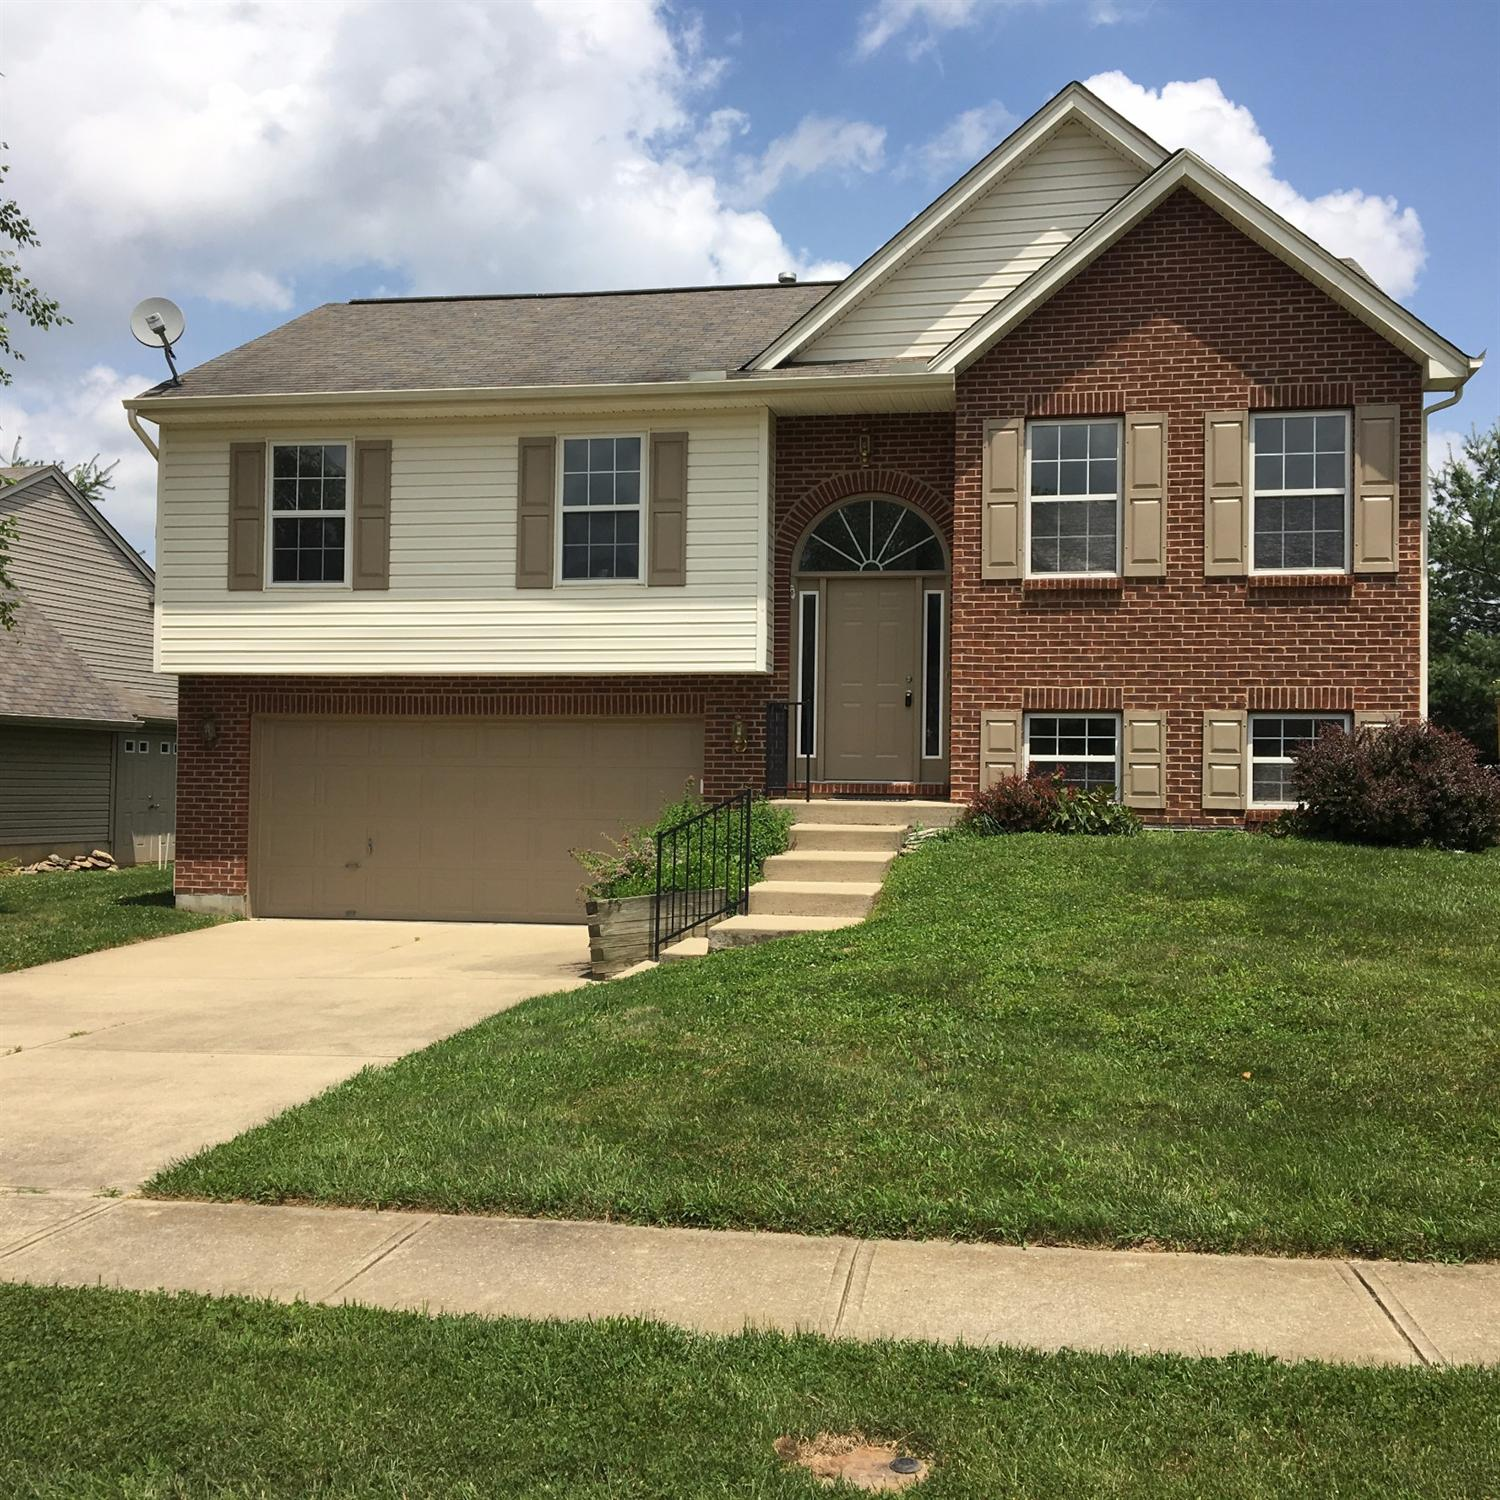 Photo 1 for 3062 Cattail Cove Ln Burlington, KY 41005